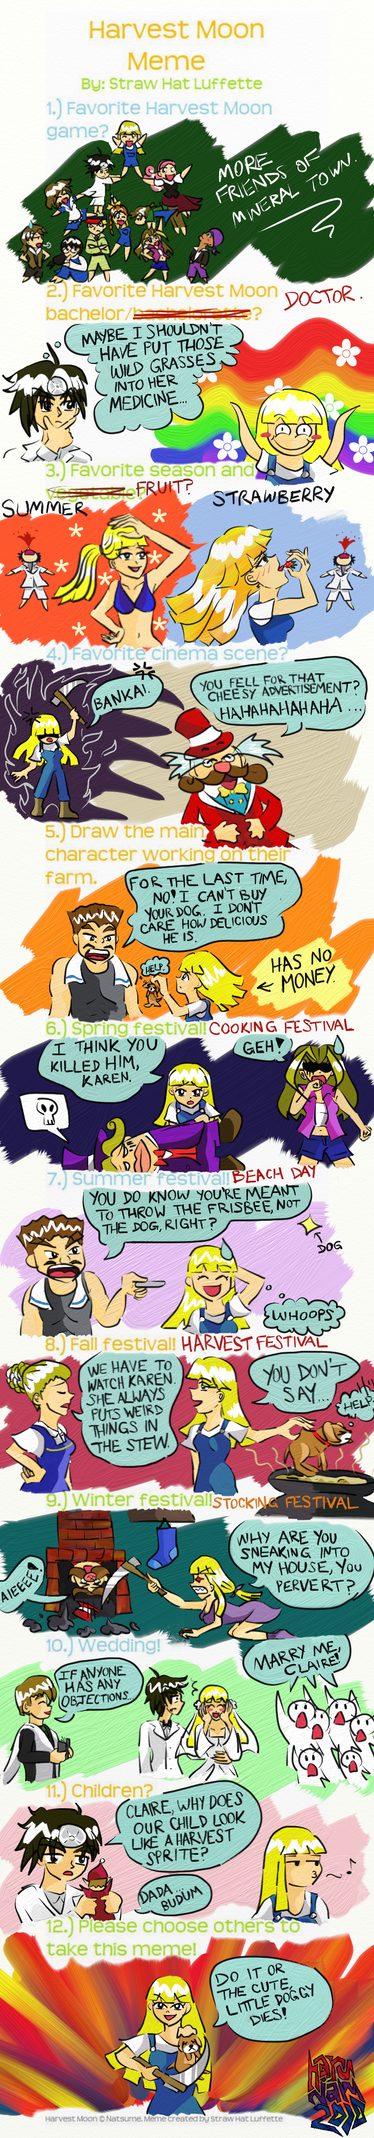 harvest_moon_meme_by_harujam harvest moon meme by harujam on deviantart,Harvest Moon Meme